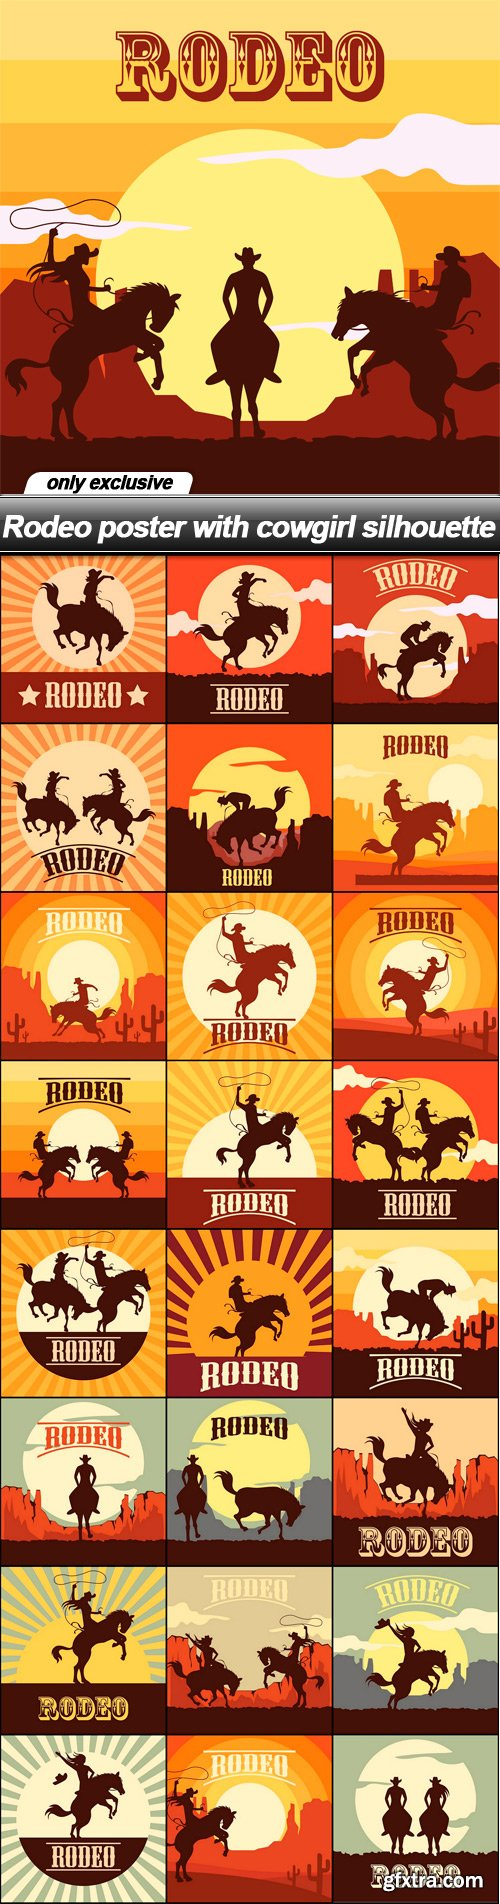 Rodeo poster with cowgirl silhouette - 25 EPS